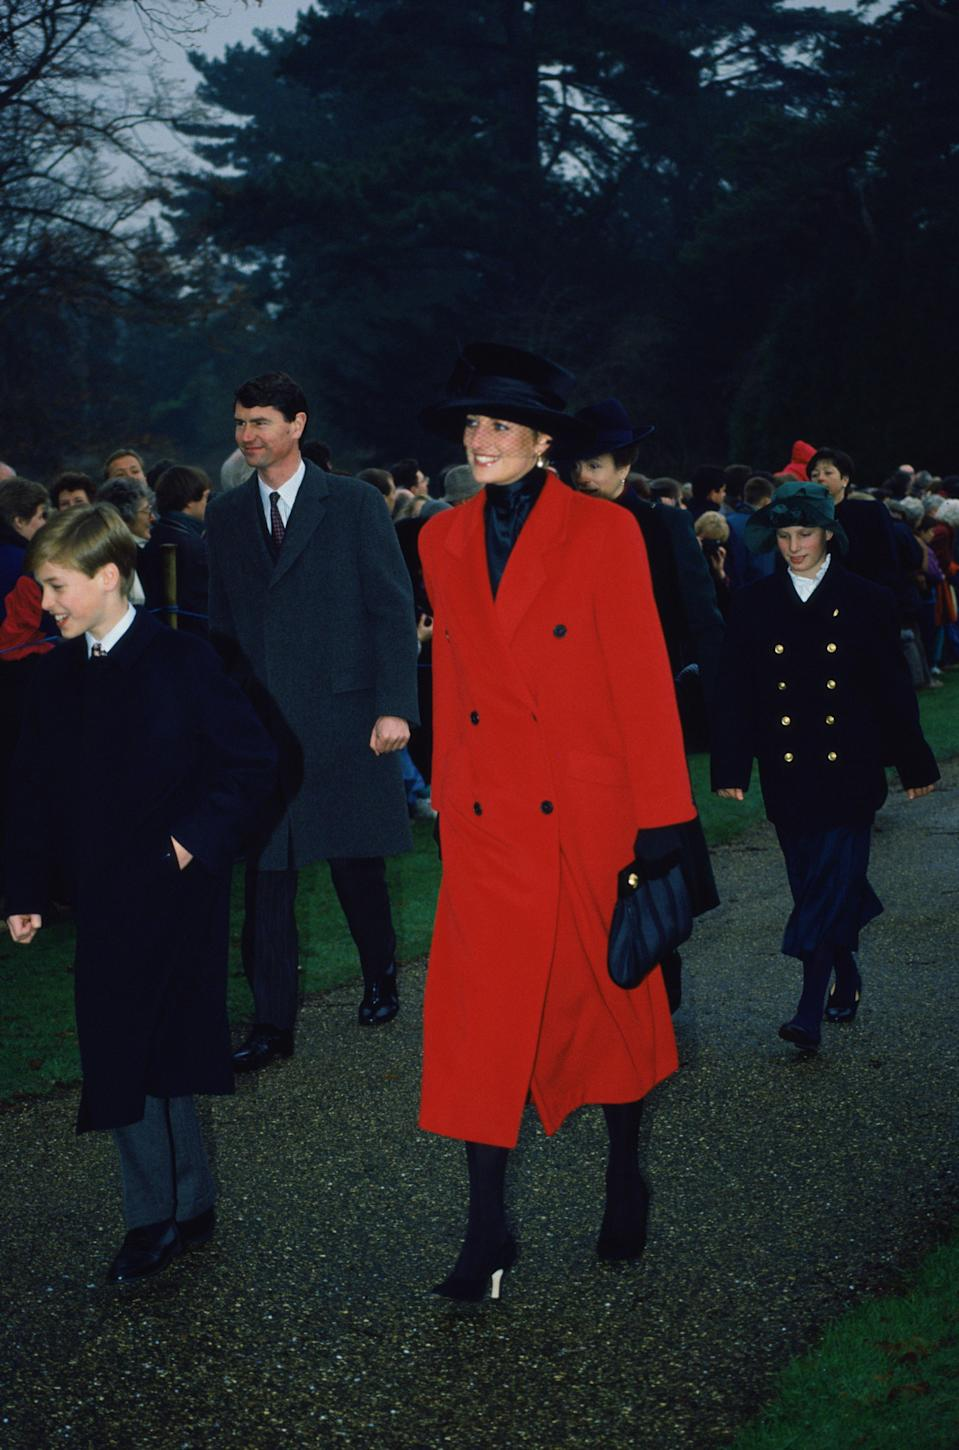 Princess Diana got into the festive mood in 1993 in this bright red coat with matching black accessories. Photo: Getty Images